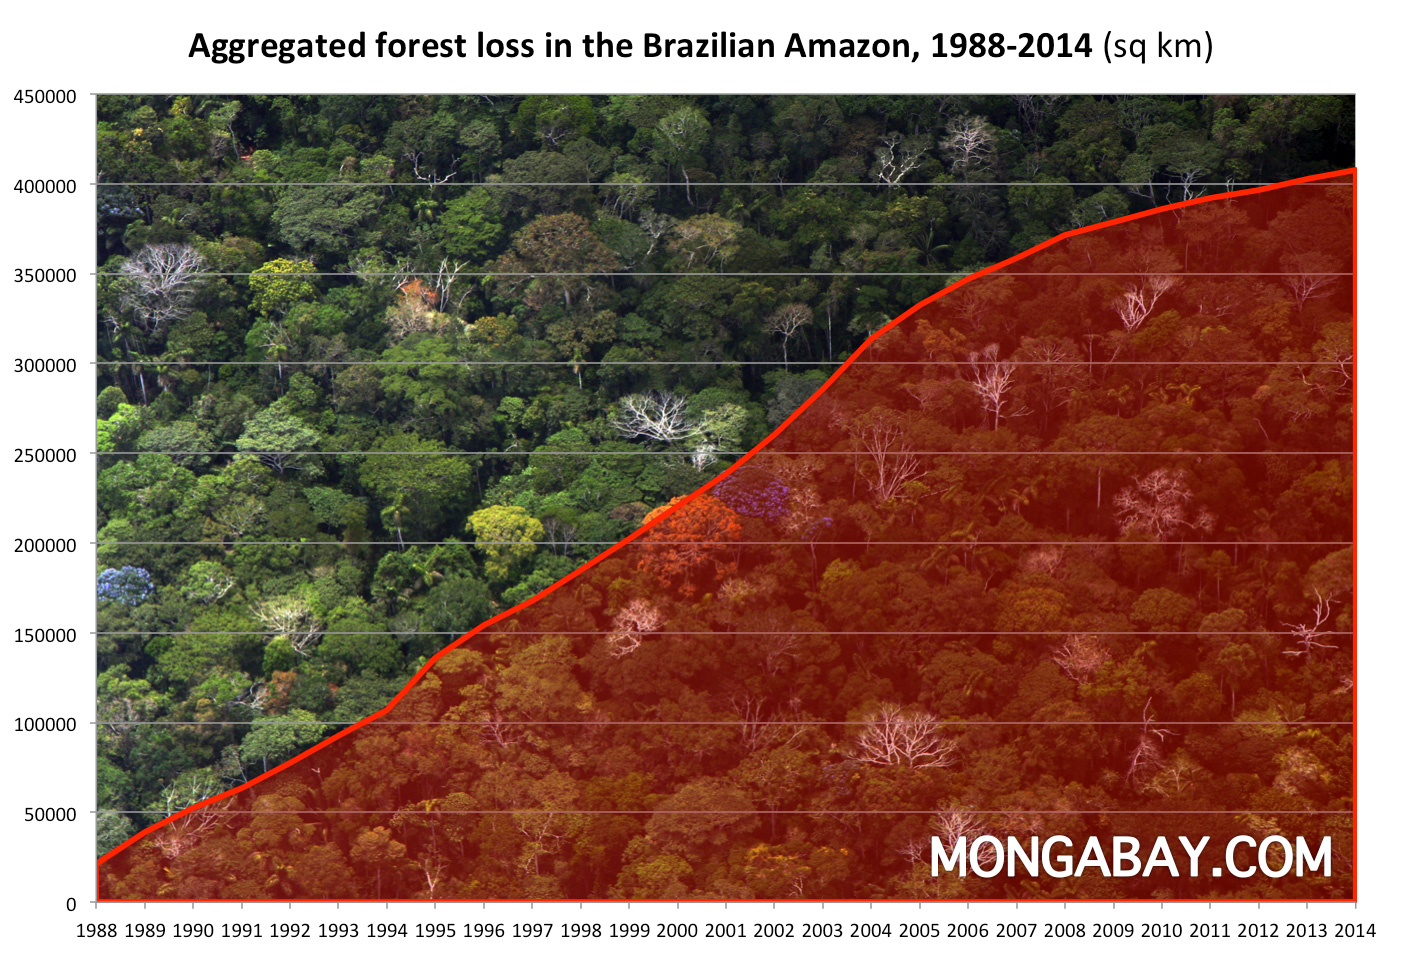 rainforest depletion caused by logging thesis statement Robbins essay on the nature and significance of economic science, latex documentclass business plan breaking down 'scarcity' in his 1932 essay on the nature and significance of economic science, british economist lionel robbins defined the discipline in terms.